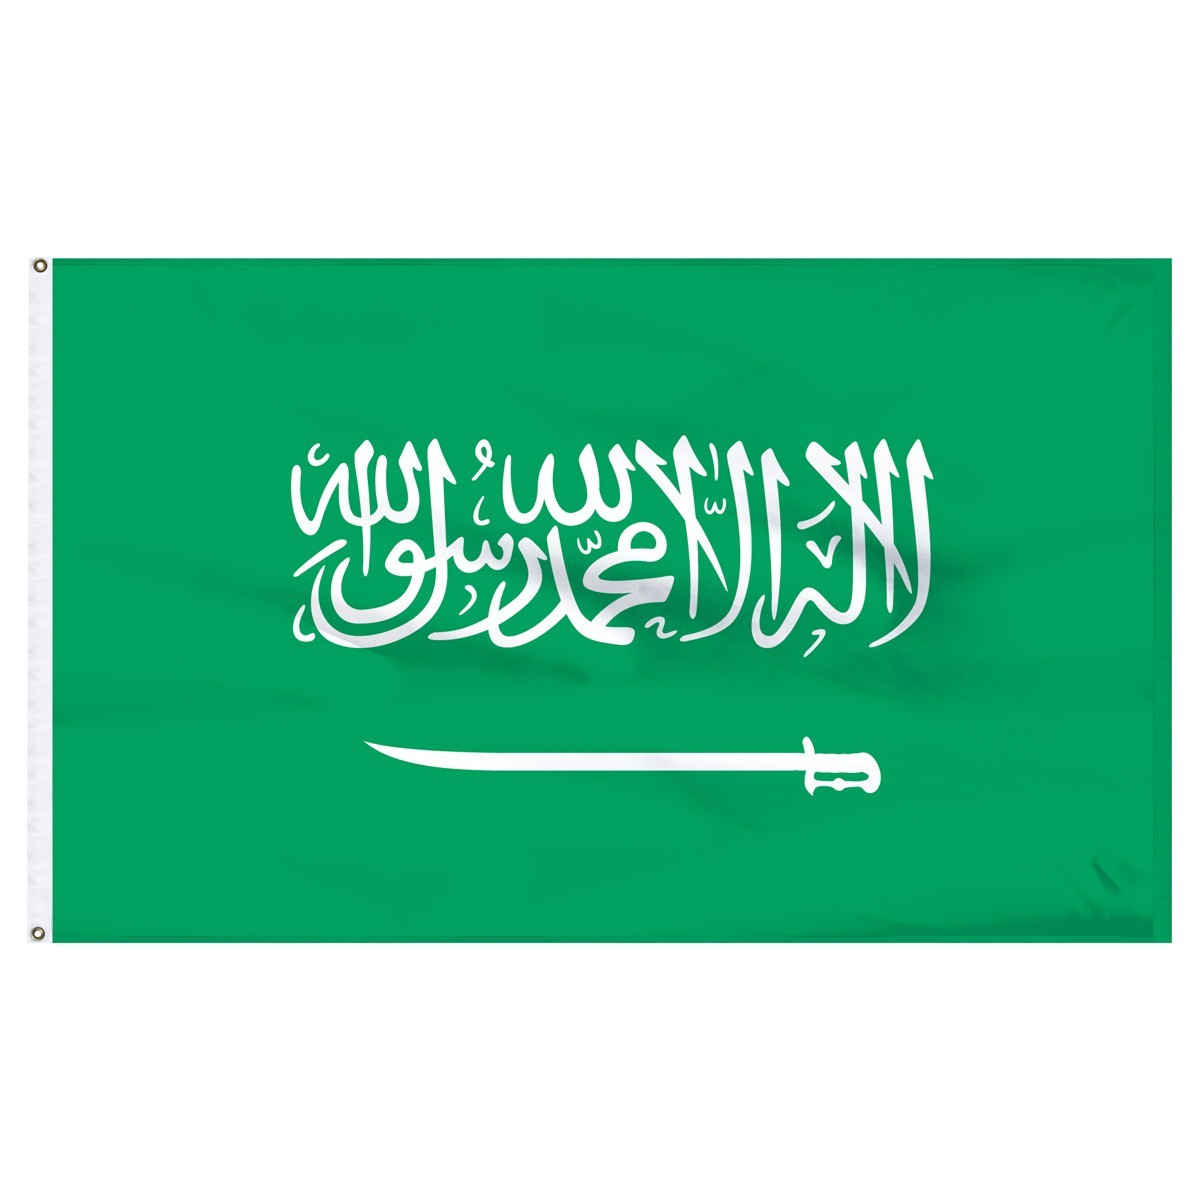 Saudi Arabia 5' x 8' Outdoor Nylon Flag